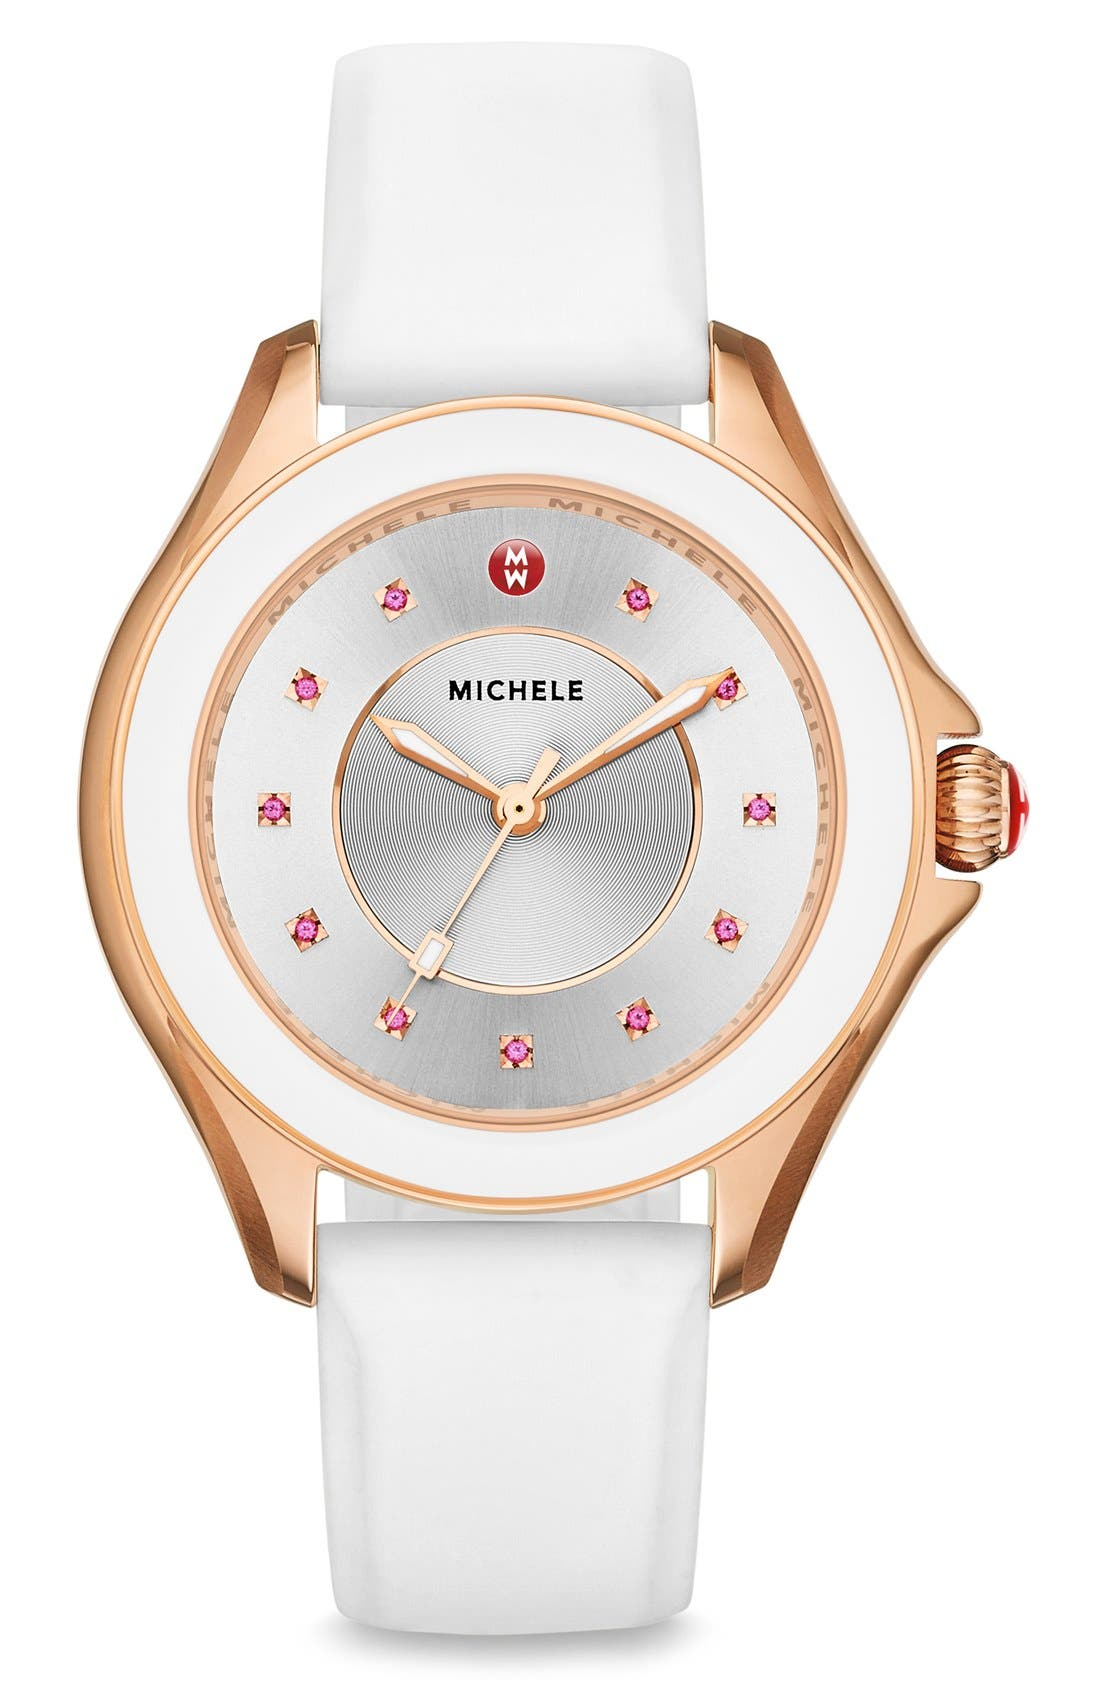 MICHELE, Cape Topaz Dial Silicone Strap Watch, 40mm, Alternate thumbnail 3, color, 100